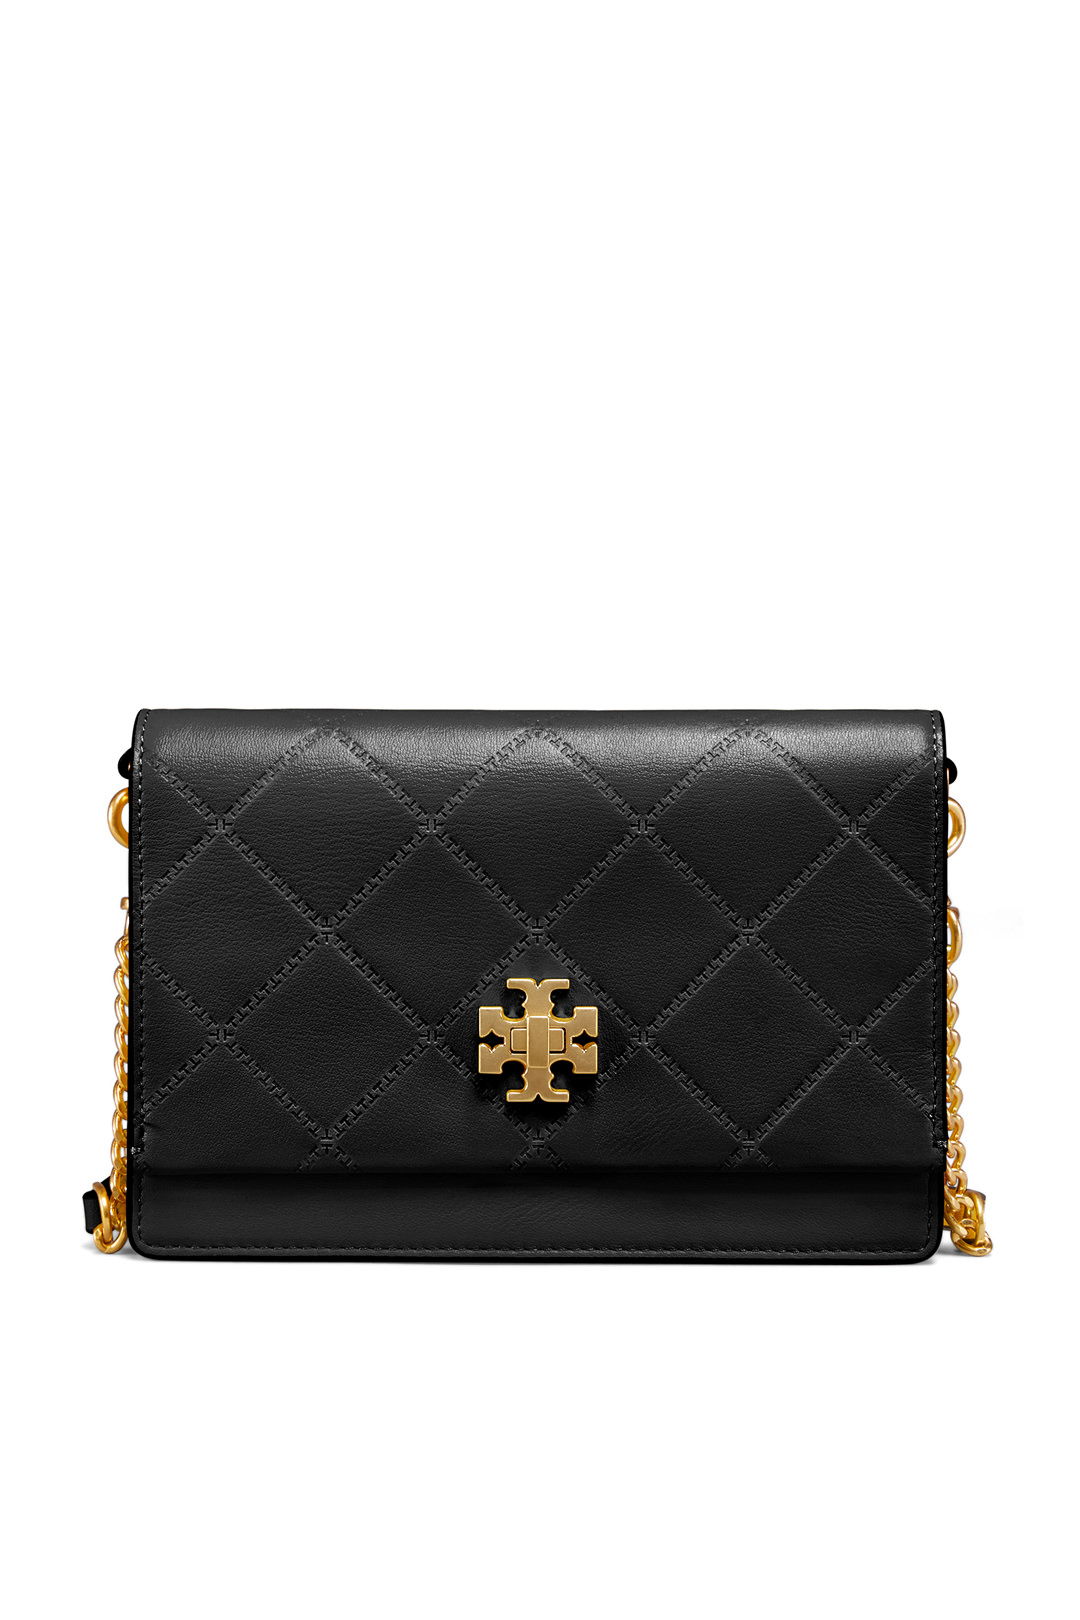 Tory Burch Quilted Georgia Mini Bag